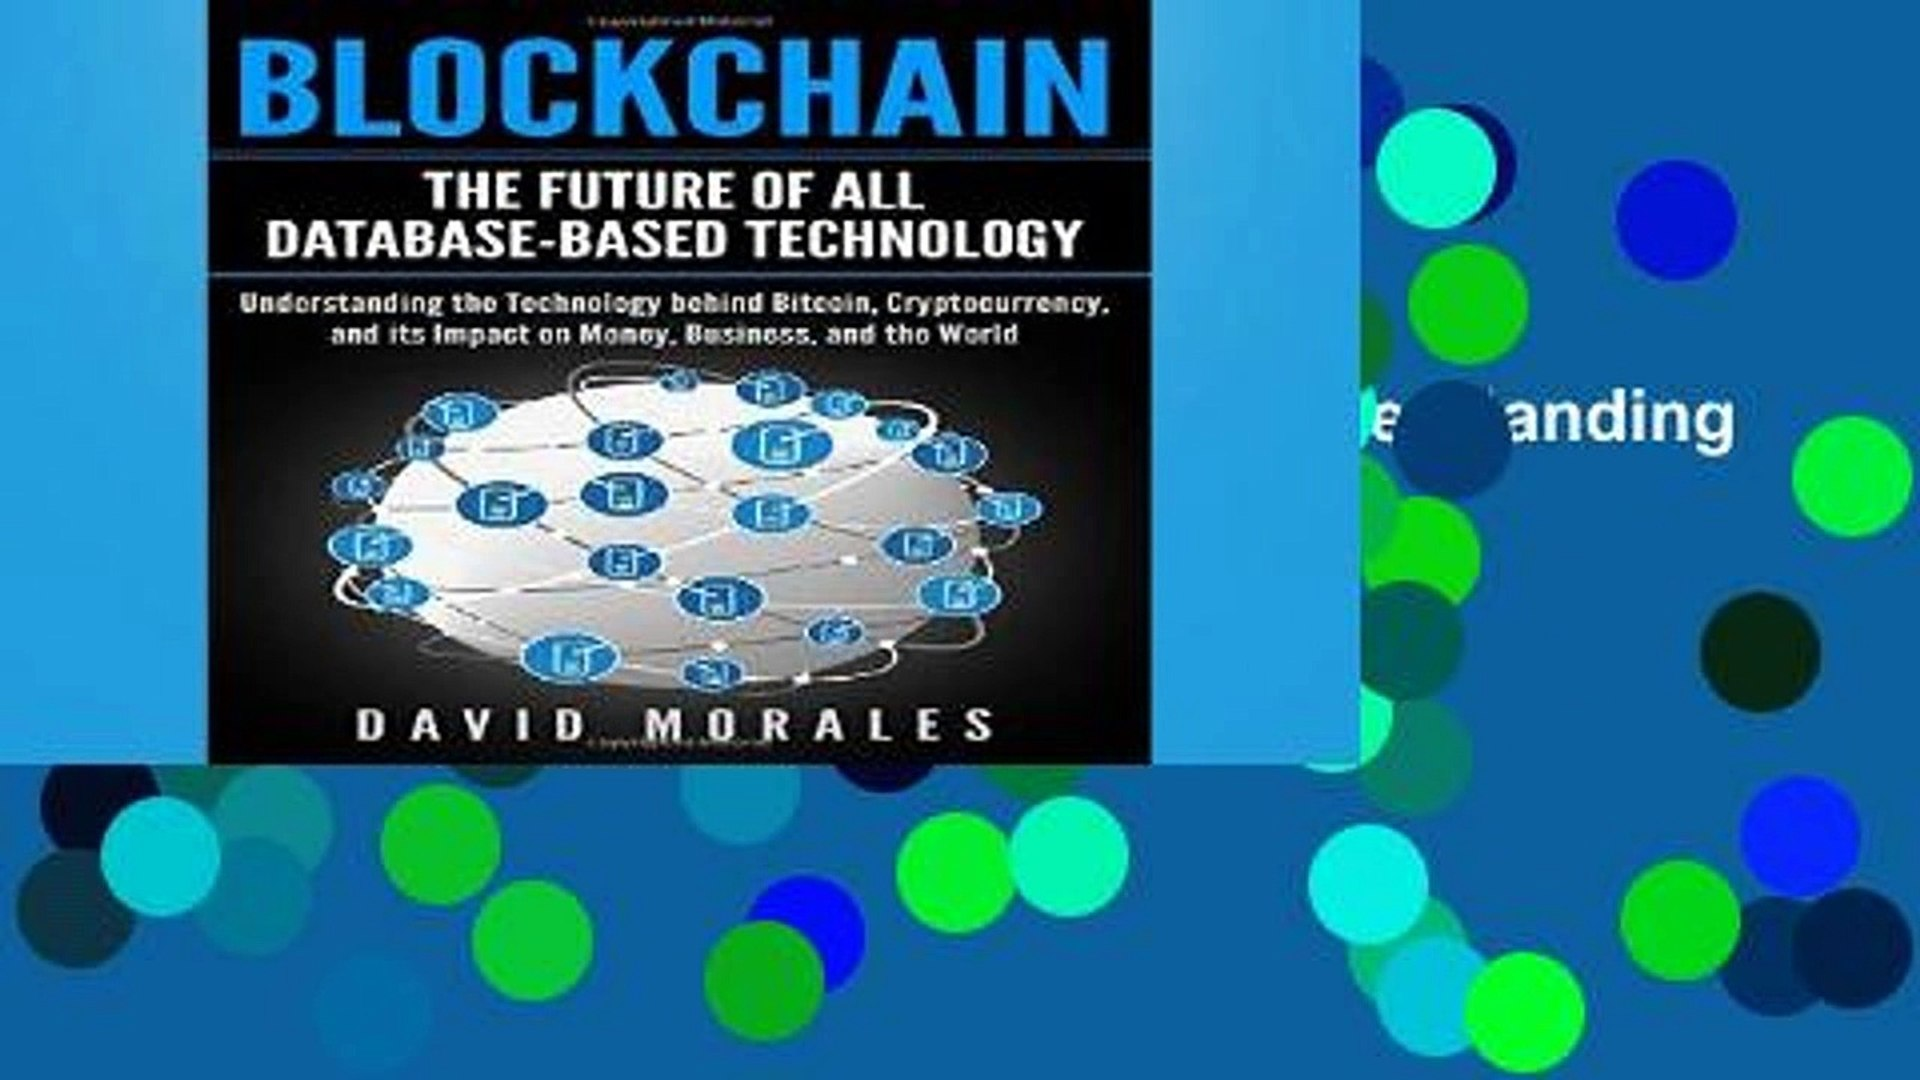 [P.D.F] Blockchain - The Future of All Database-Based Technology - Understanding The Technology